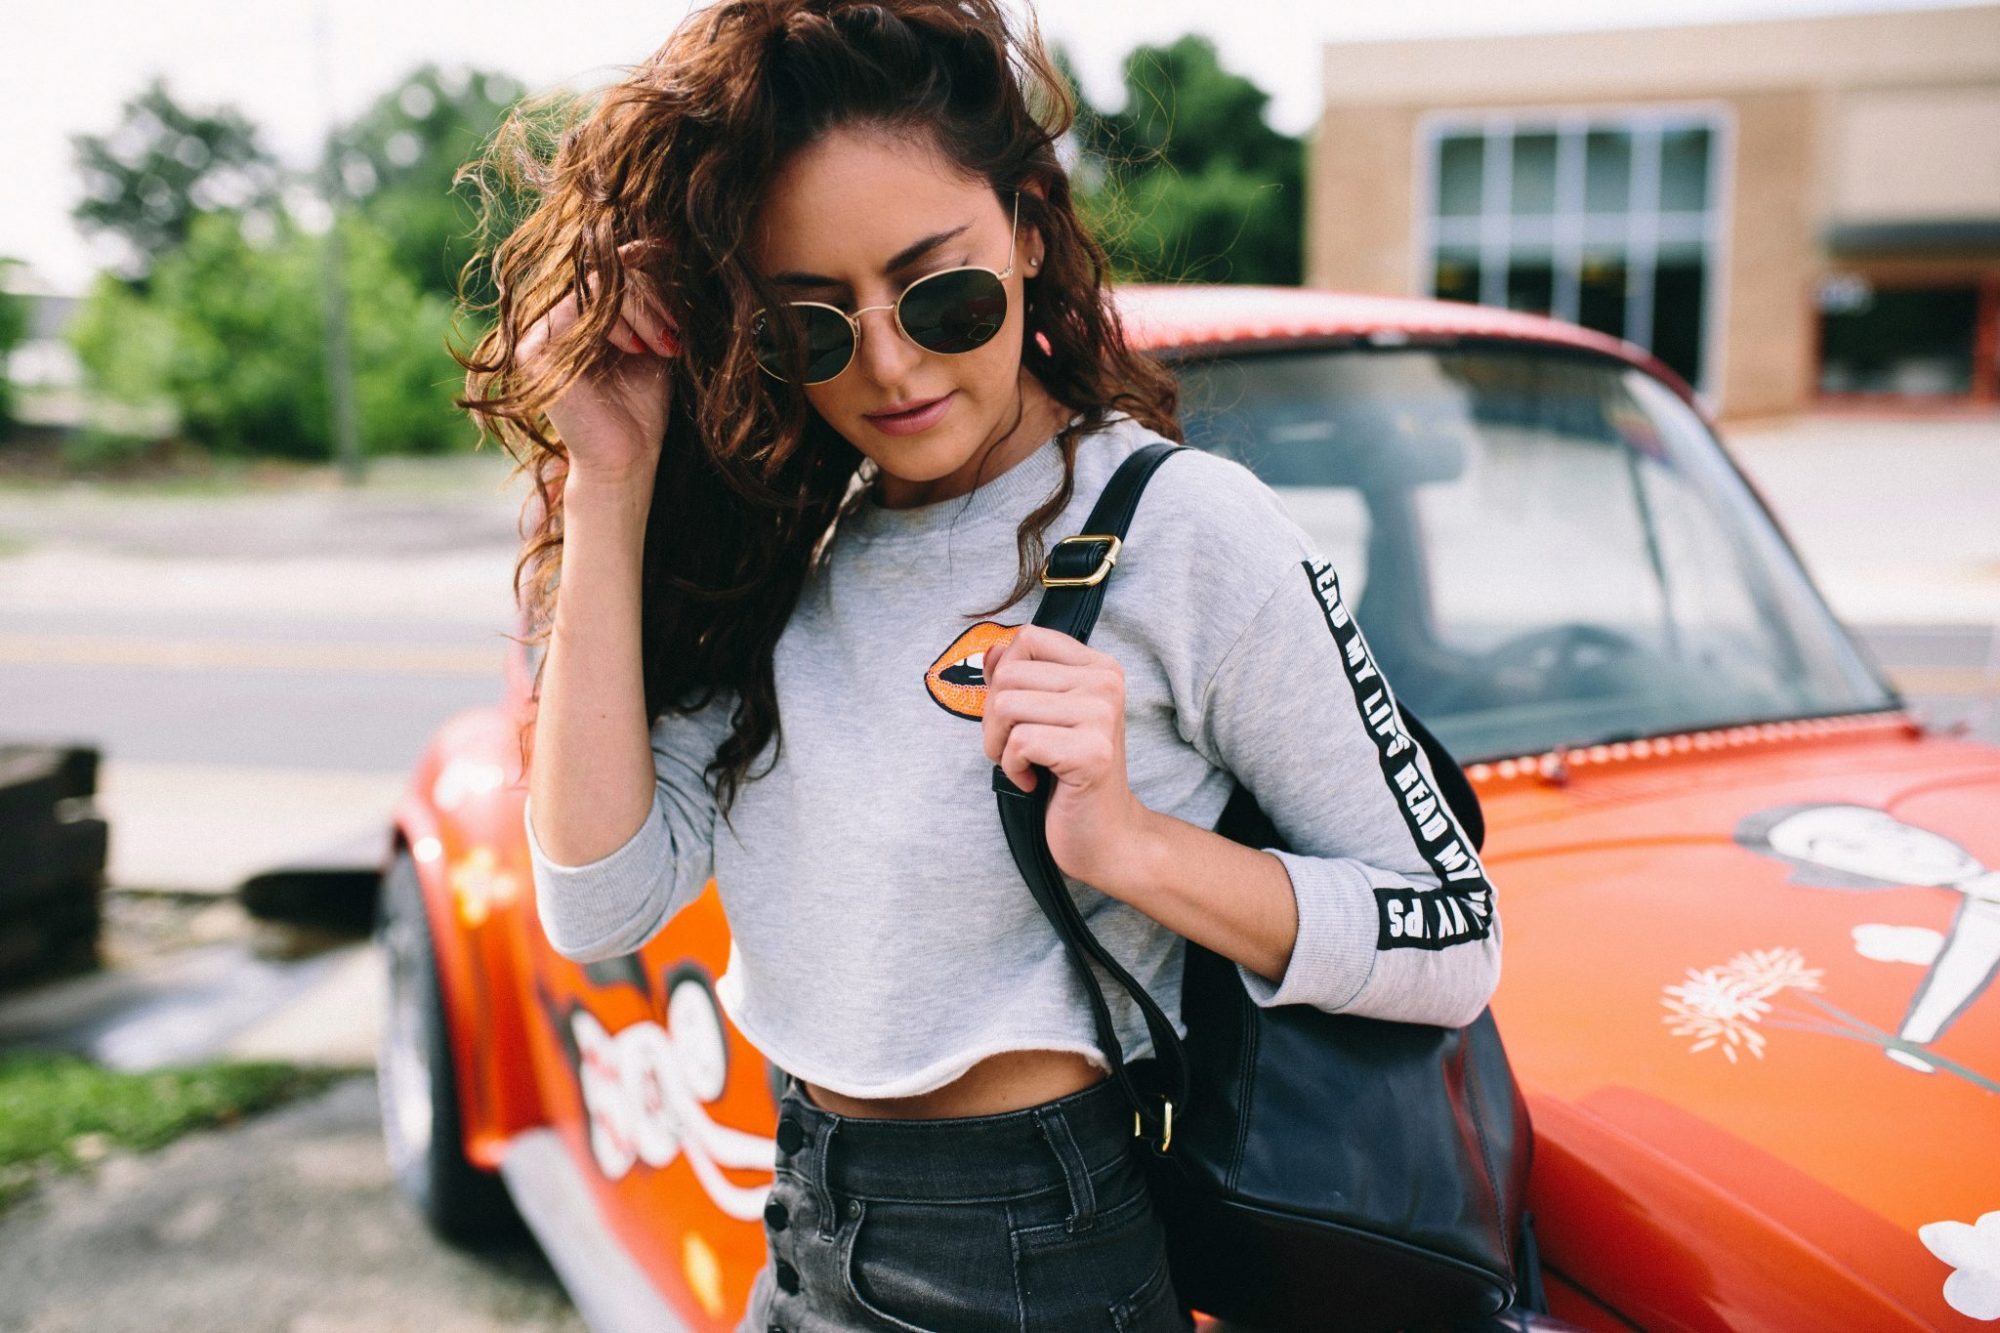 edgy summer look, how to style a cropped sweater, cool summer outfit ideas, grungy summer outfit ideas, how to wear a denim skirt, how to style a backpack as an adult, how to wear a cropped sweatshirt, hm Sweatshirt with Printed Design, Amazon HALE Women's Avri A-Line Mini Skirt